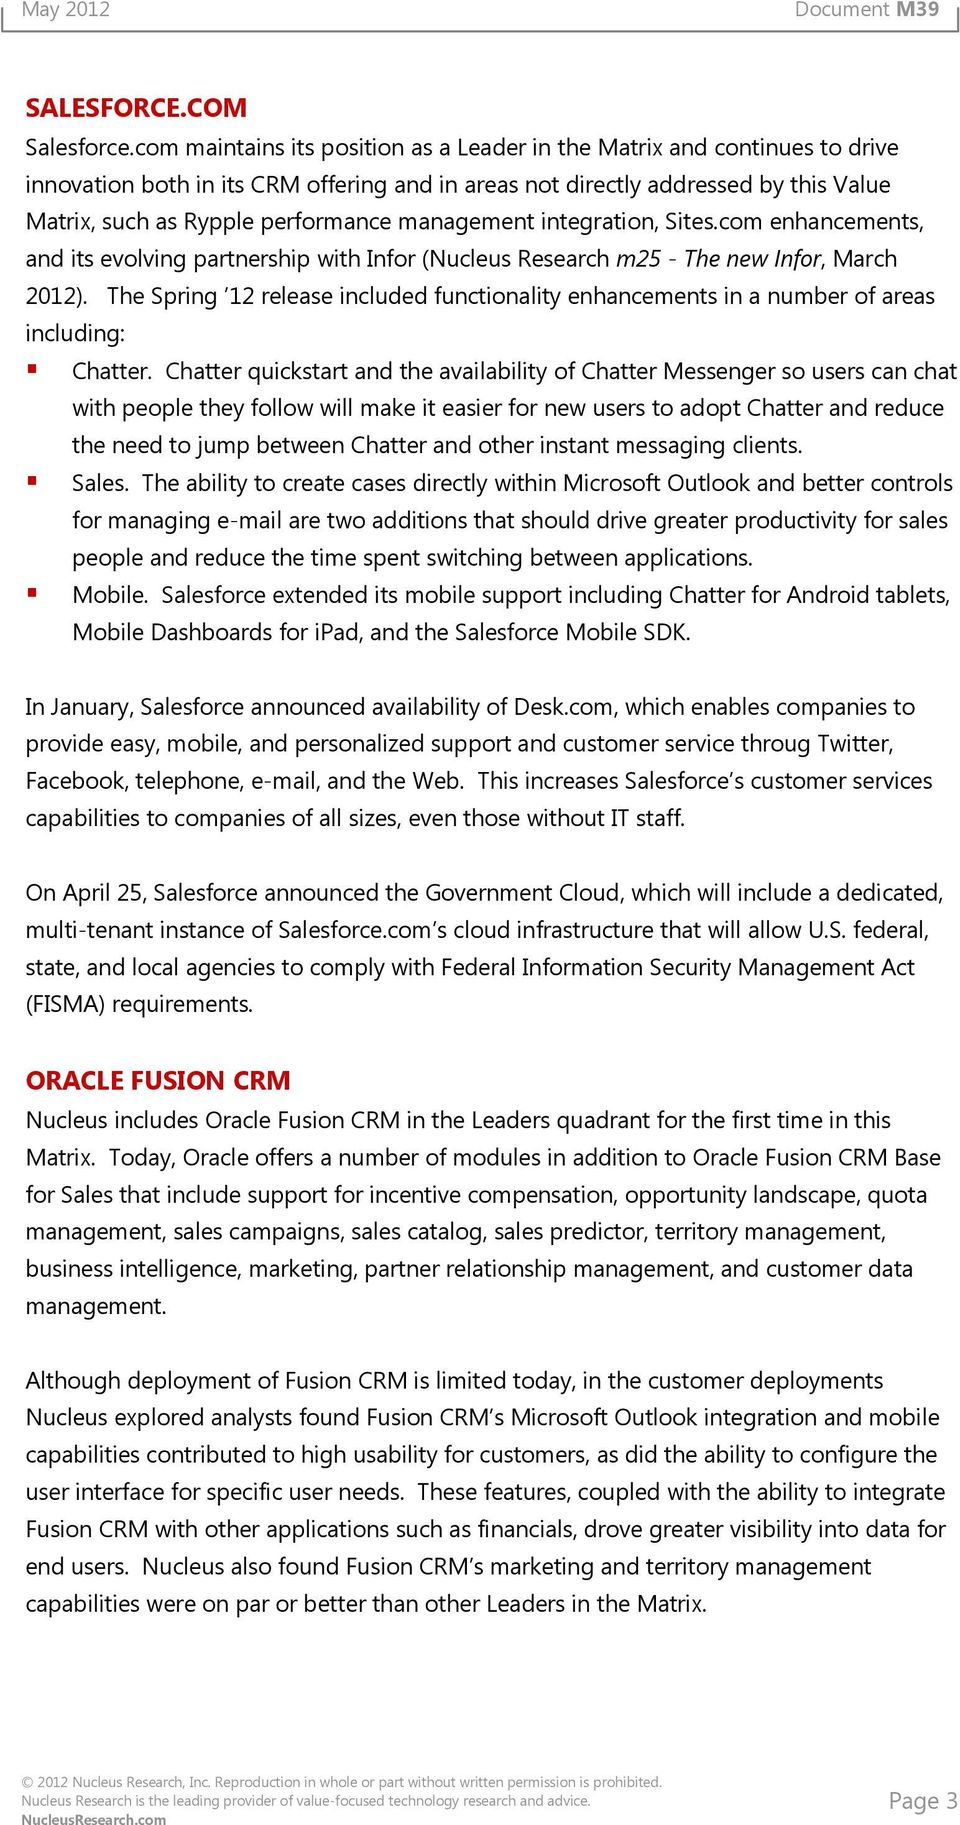 management integration, Sites.com enhancements, and its evolving partnership with Infor (Nucleus Research m25 - The new Infor, March 2012).